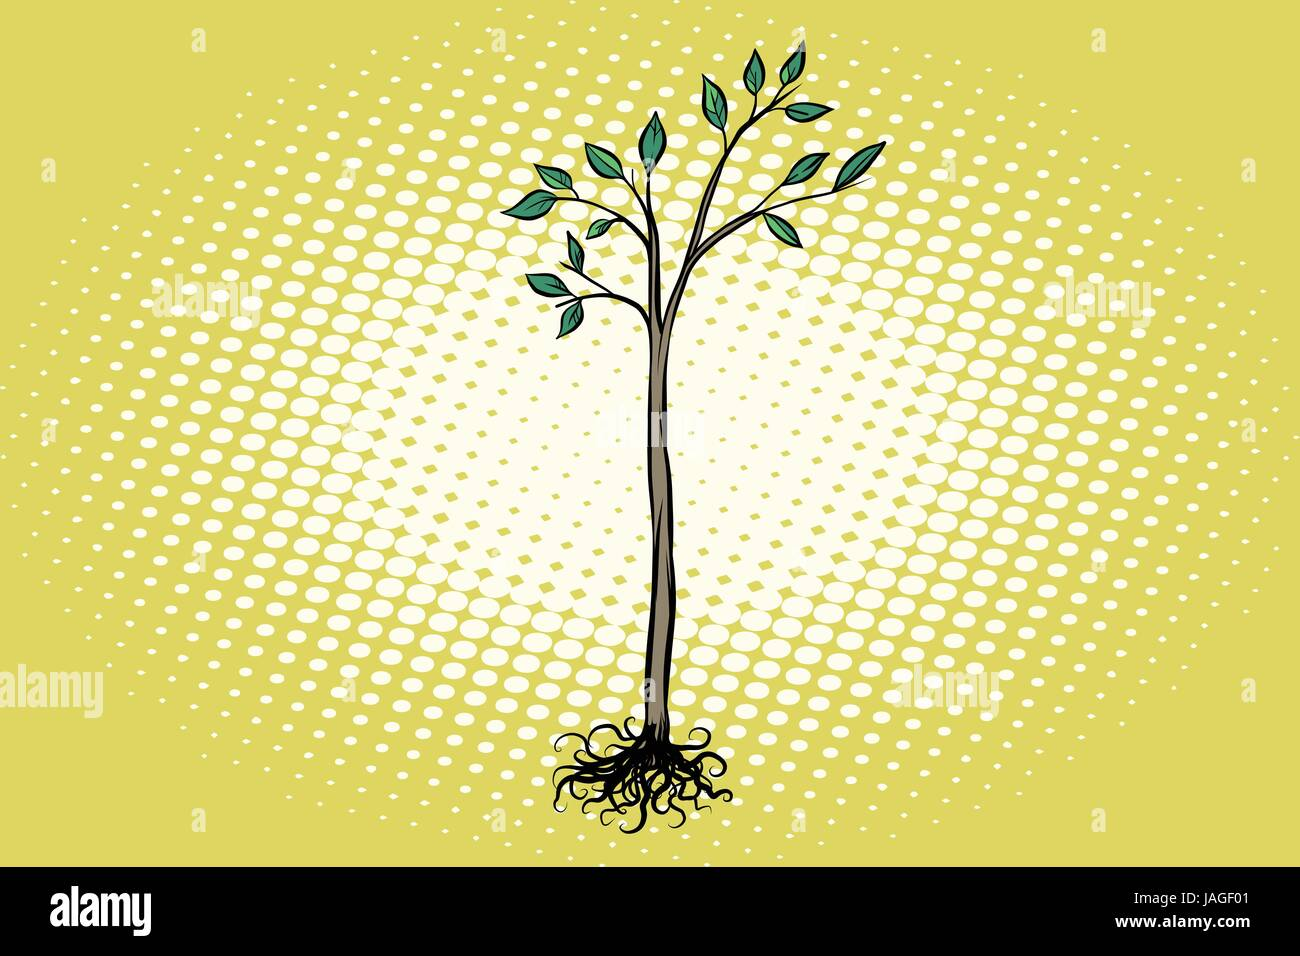 tree seedling with green leaves. Nature ecology. Pop art retro vector illustration - Stock Vector